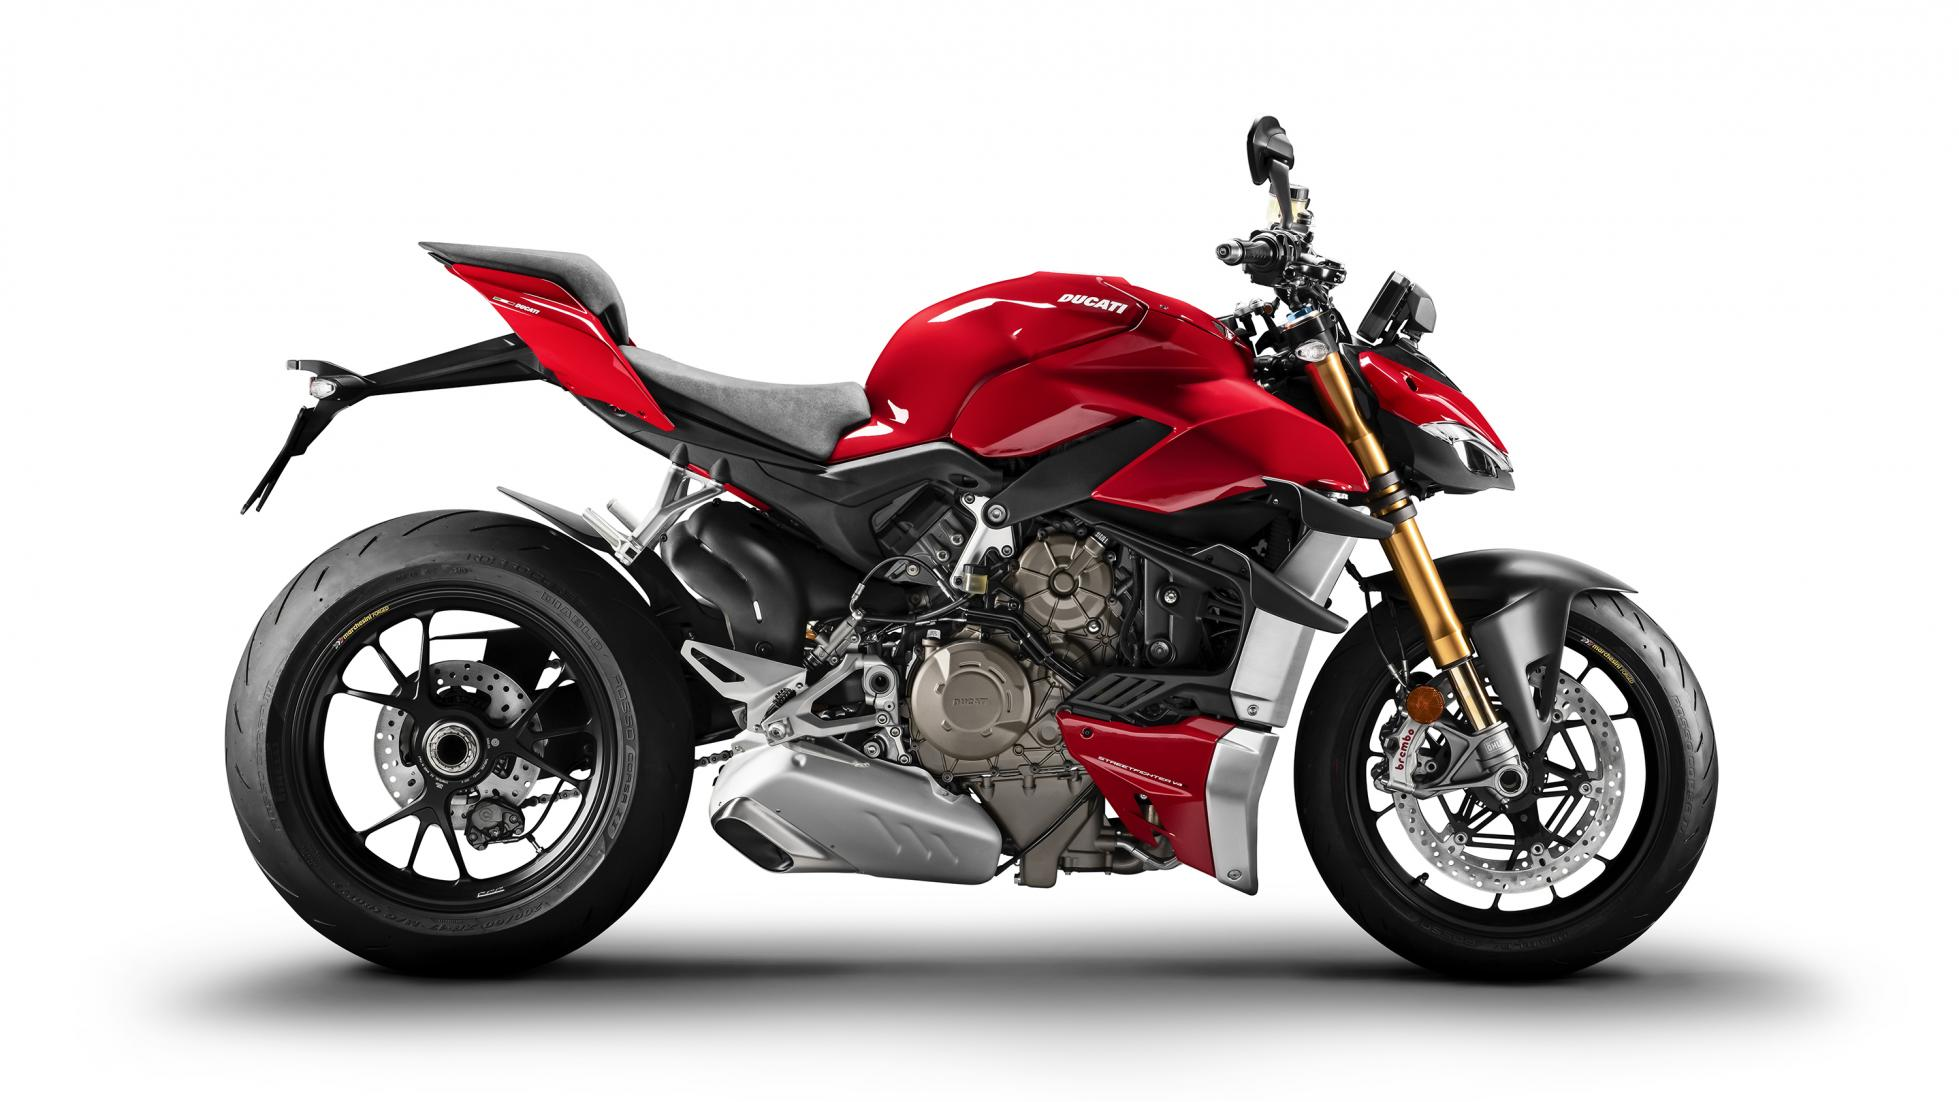 These motorbikes will kill a supercar for under £20k (approx. RM108,000)